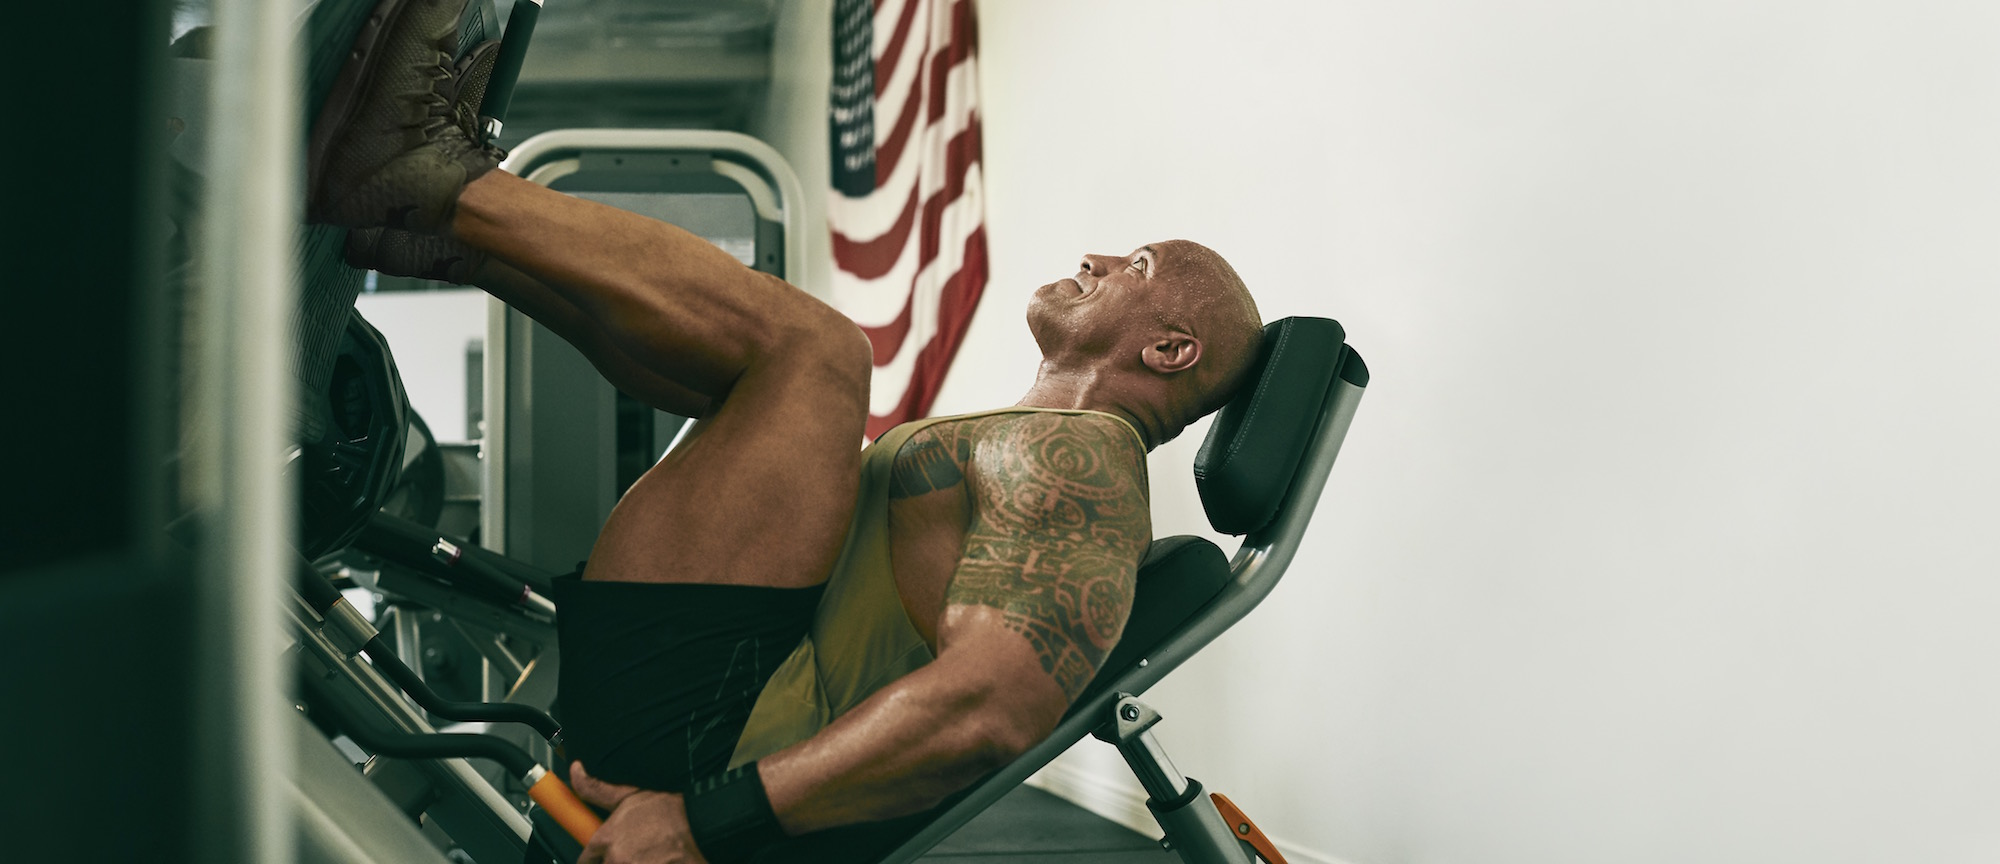 dwayne johnson project rock USDNA collection Under armour rock delta 4